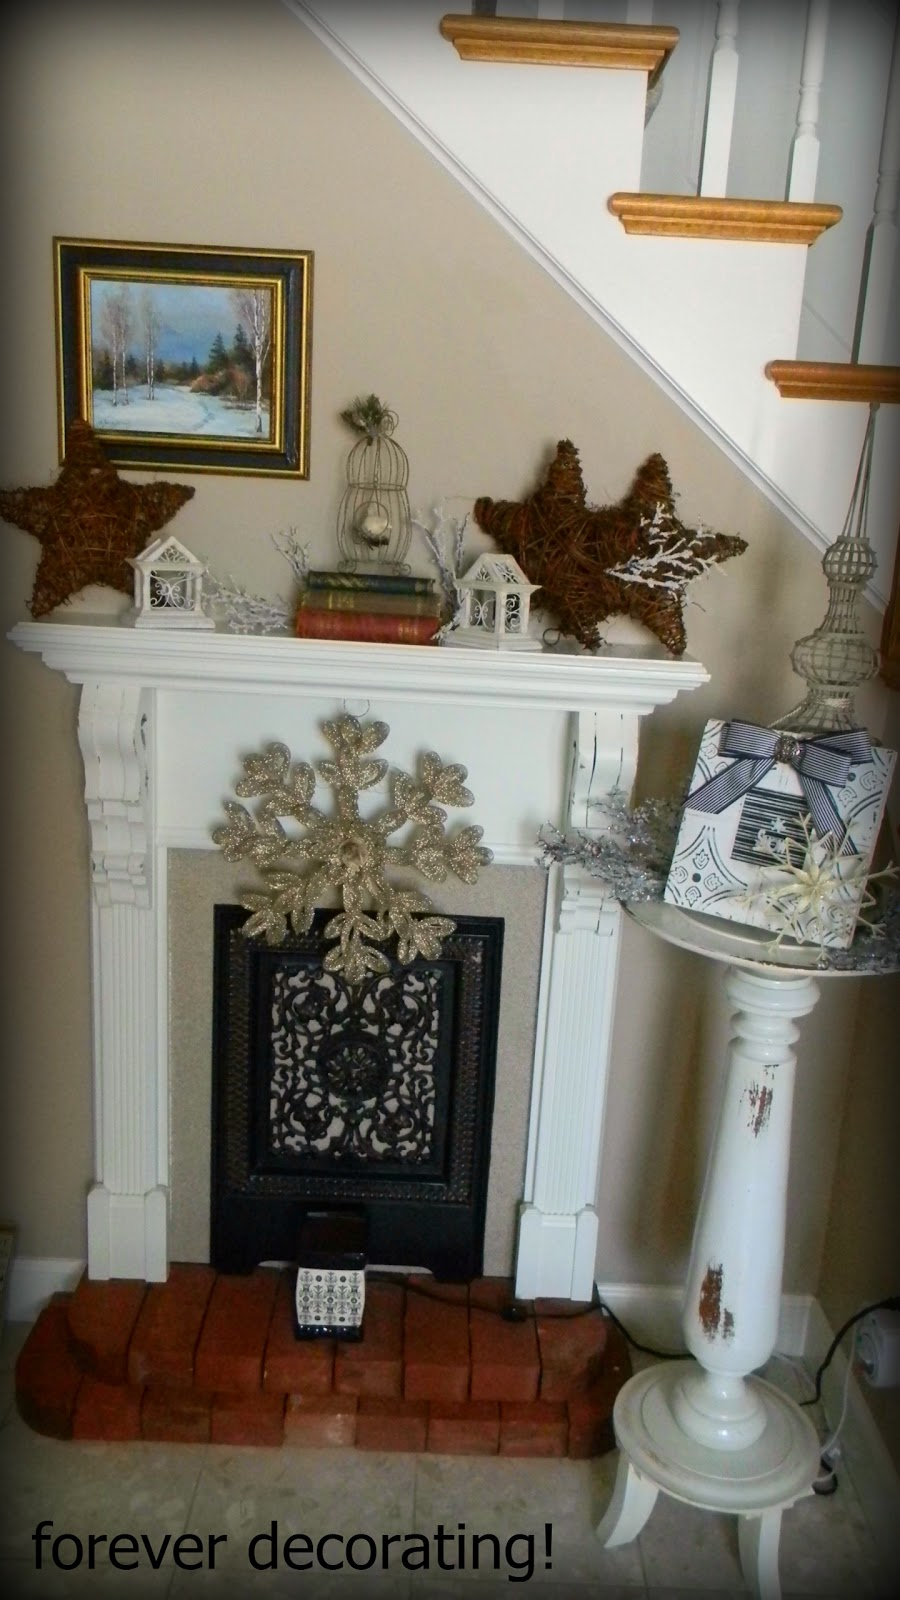 competitive price 0b902 a462e Forever Decorating!: Foyer Winter Mantel ~ 2013